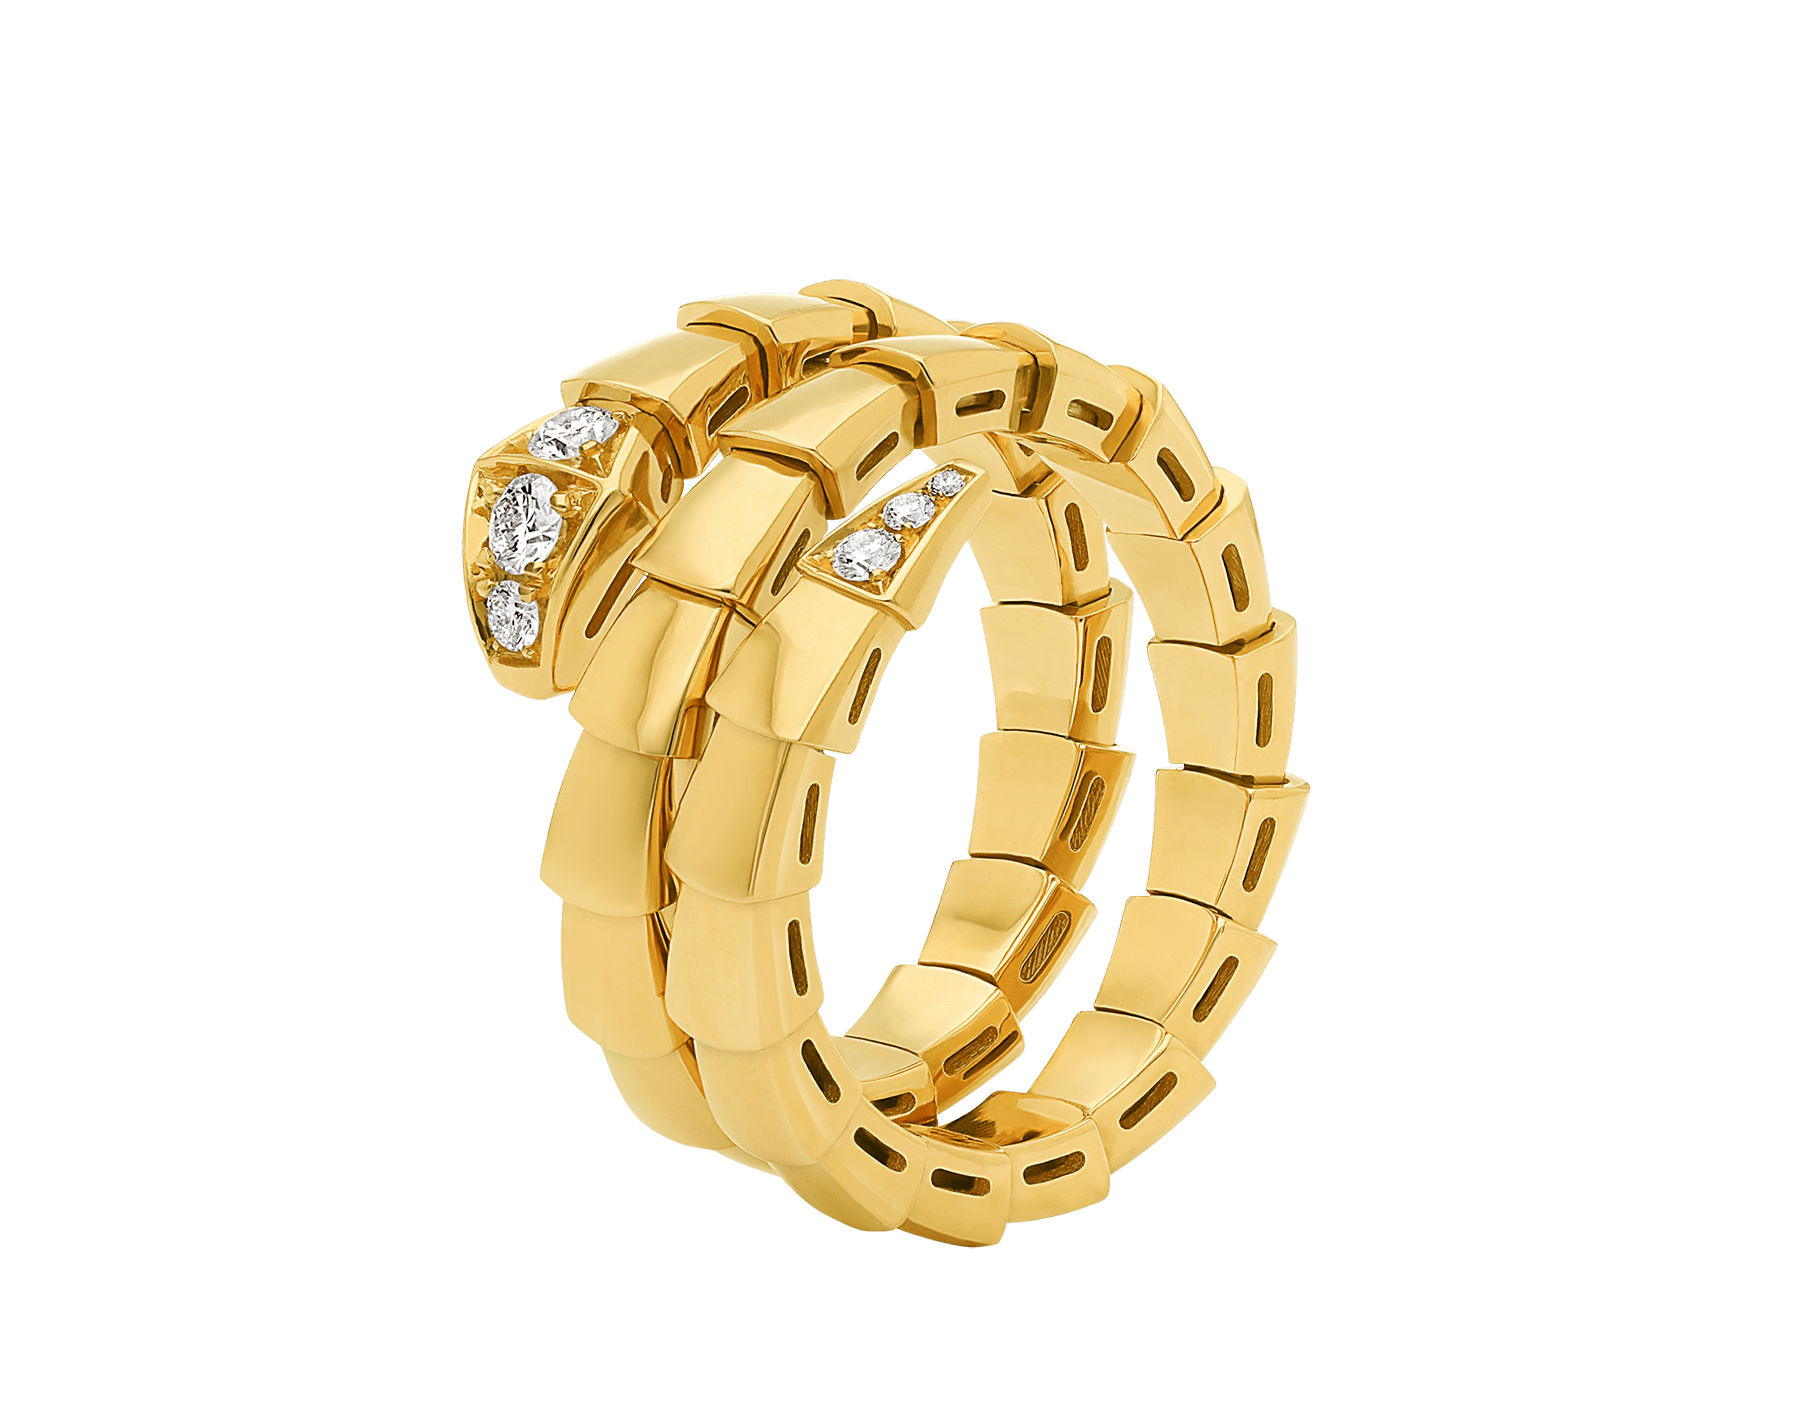 Serpenti Viper 18 kt yellow gold two-coil ring set with demi-pavé diamonds AN858970 image 2